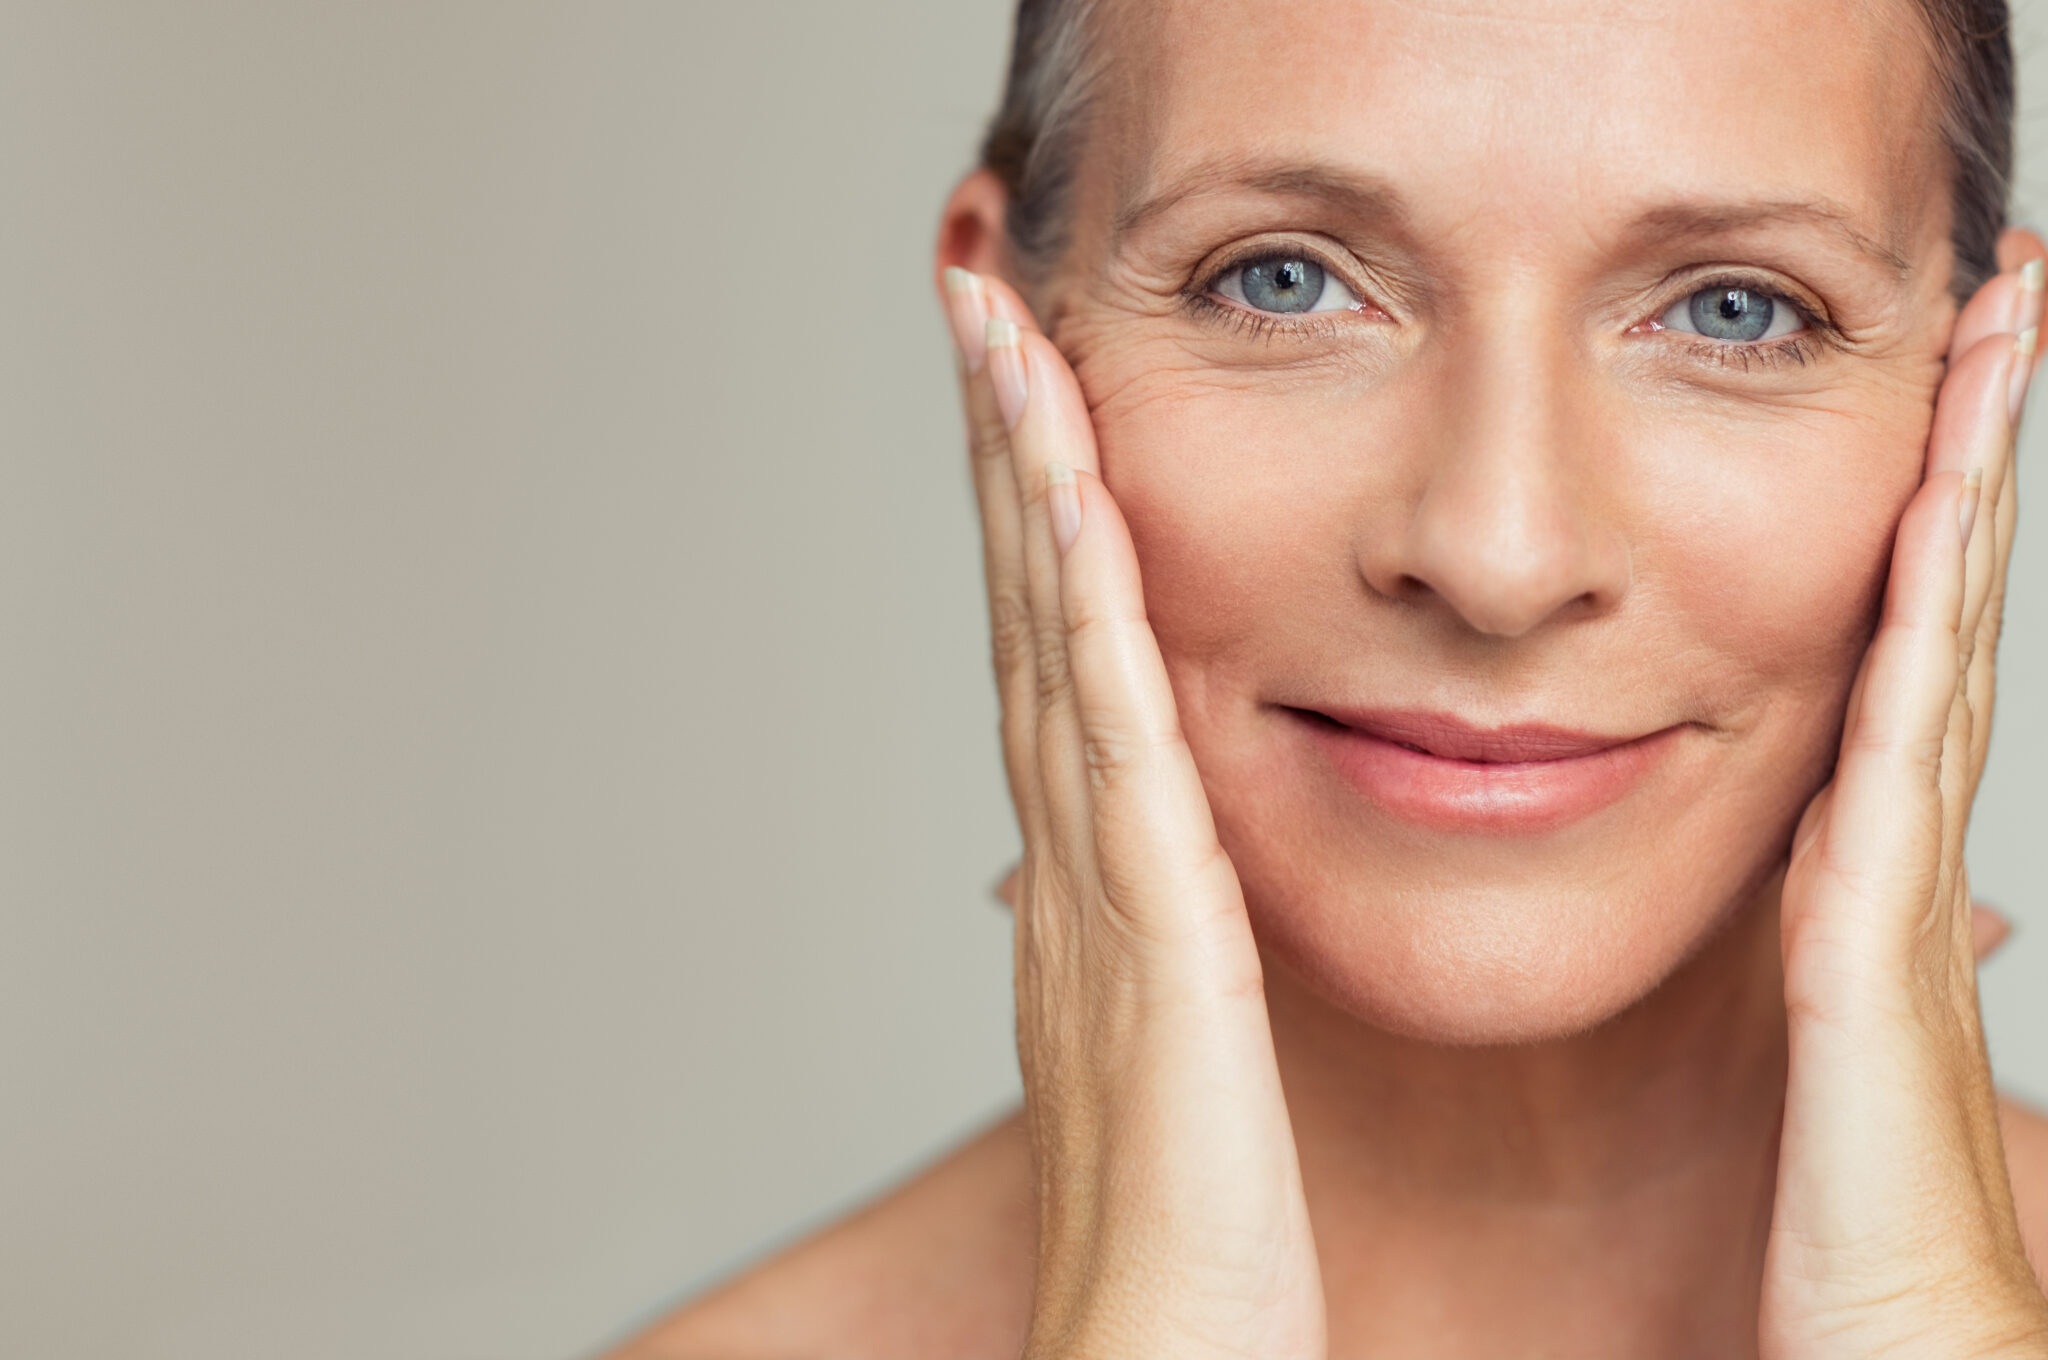 treating fine lines and wrinkles